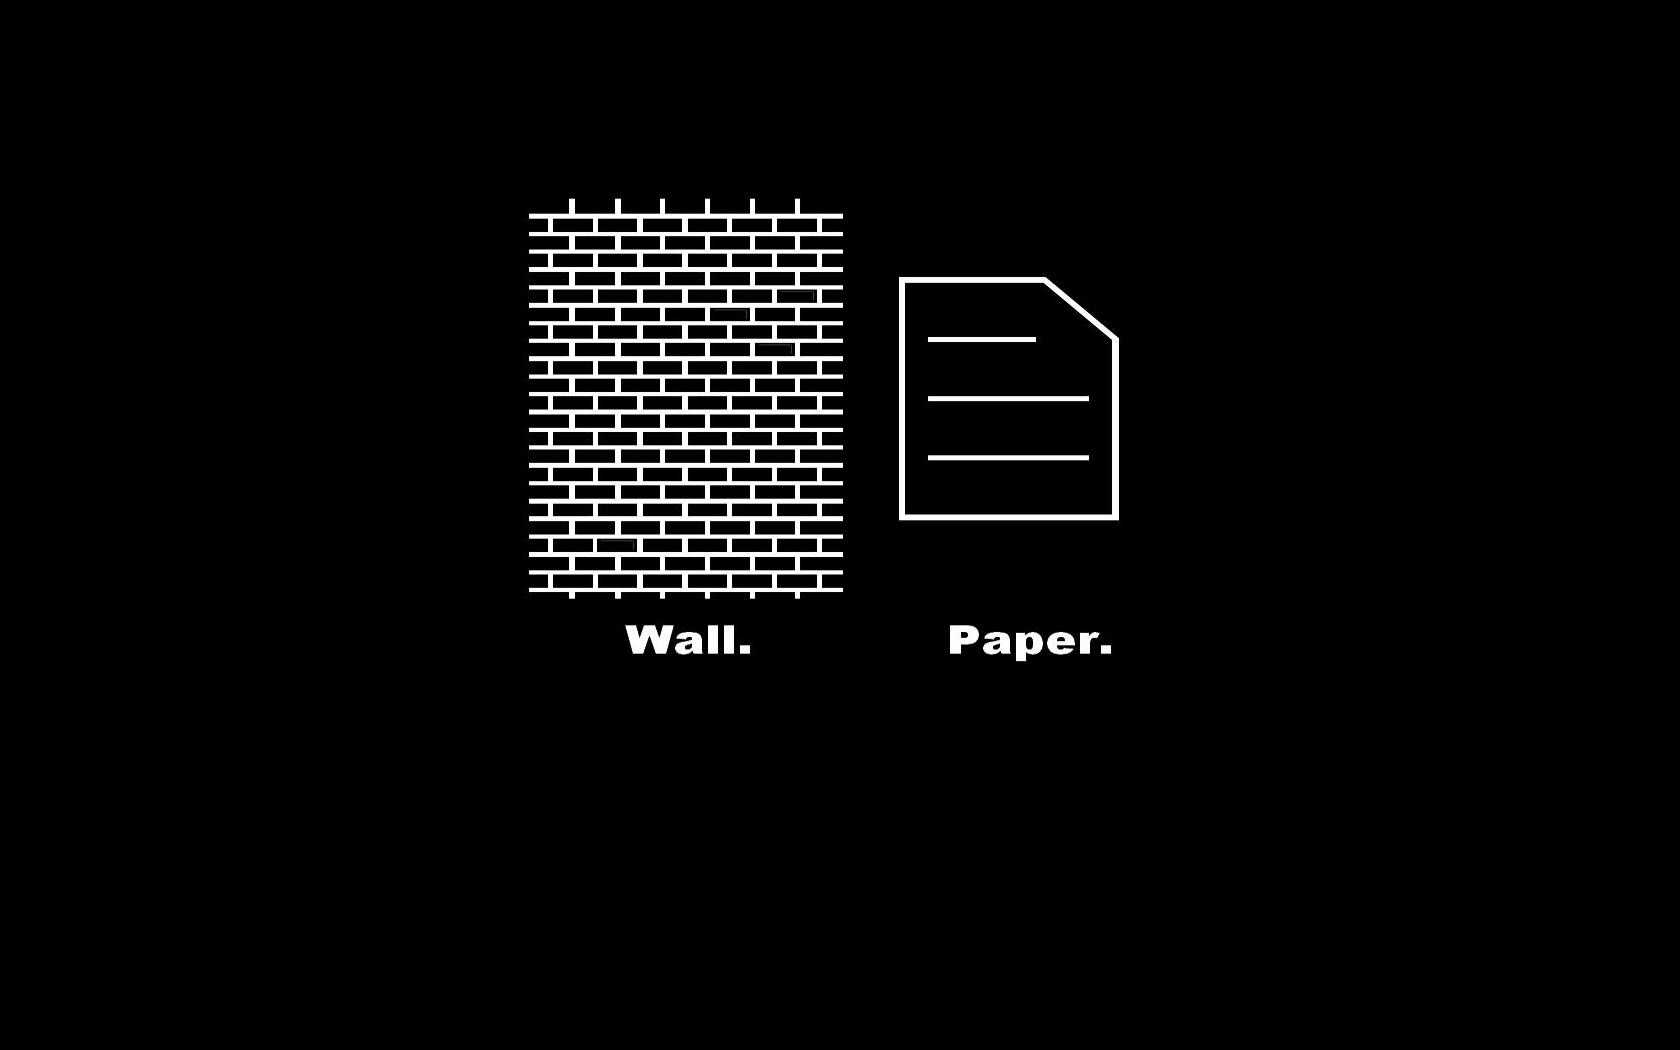 Funny Wall And Paper Image